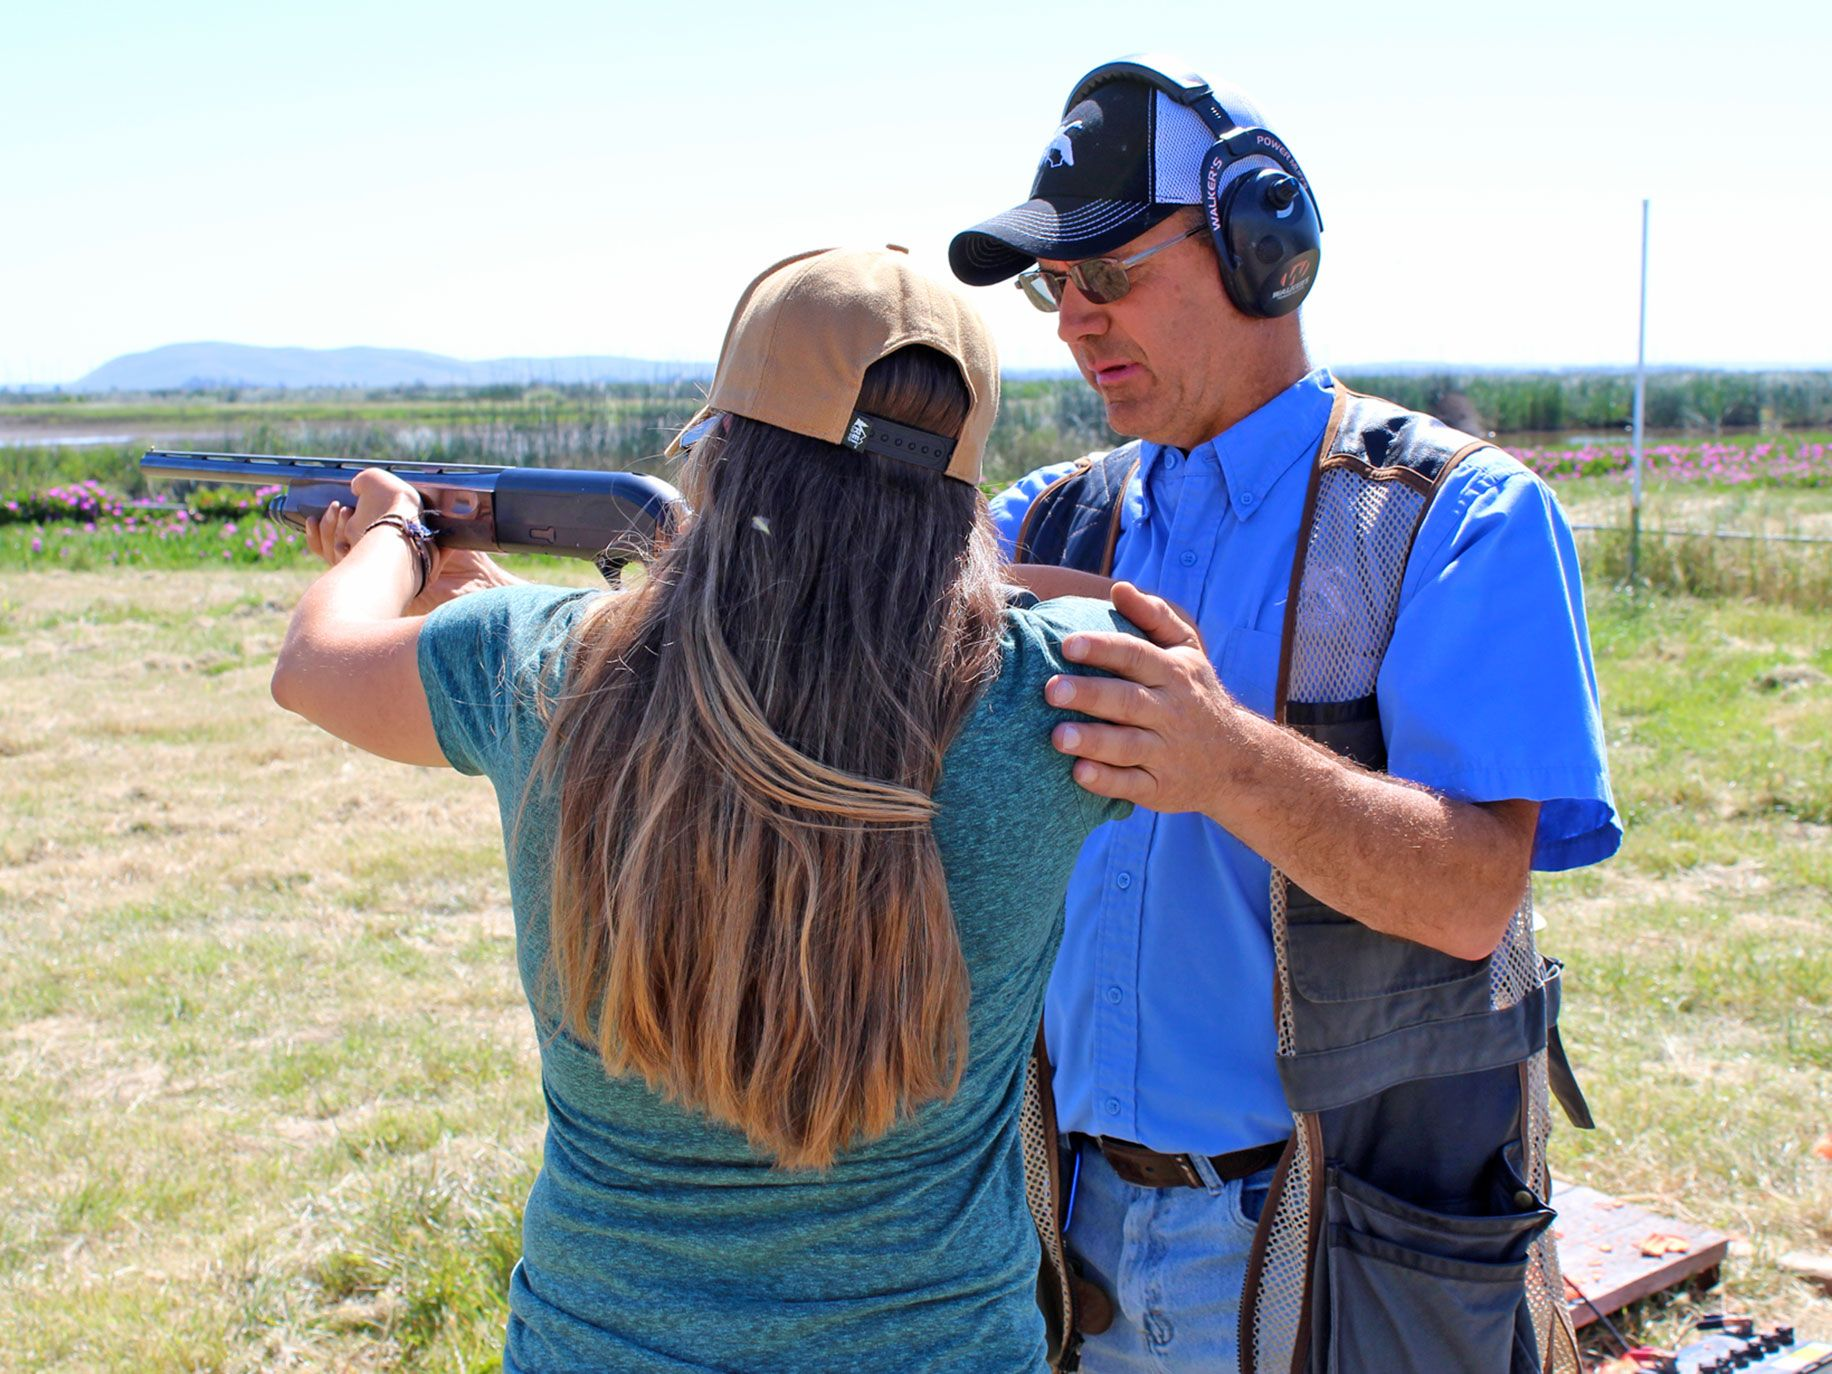 A student and instructor at the Hunting 101 for Adults class at Grizzly Ranch in the Suisun Marsh, where students received shooting instruction and learned about wild game processing and preparation.